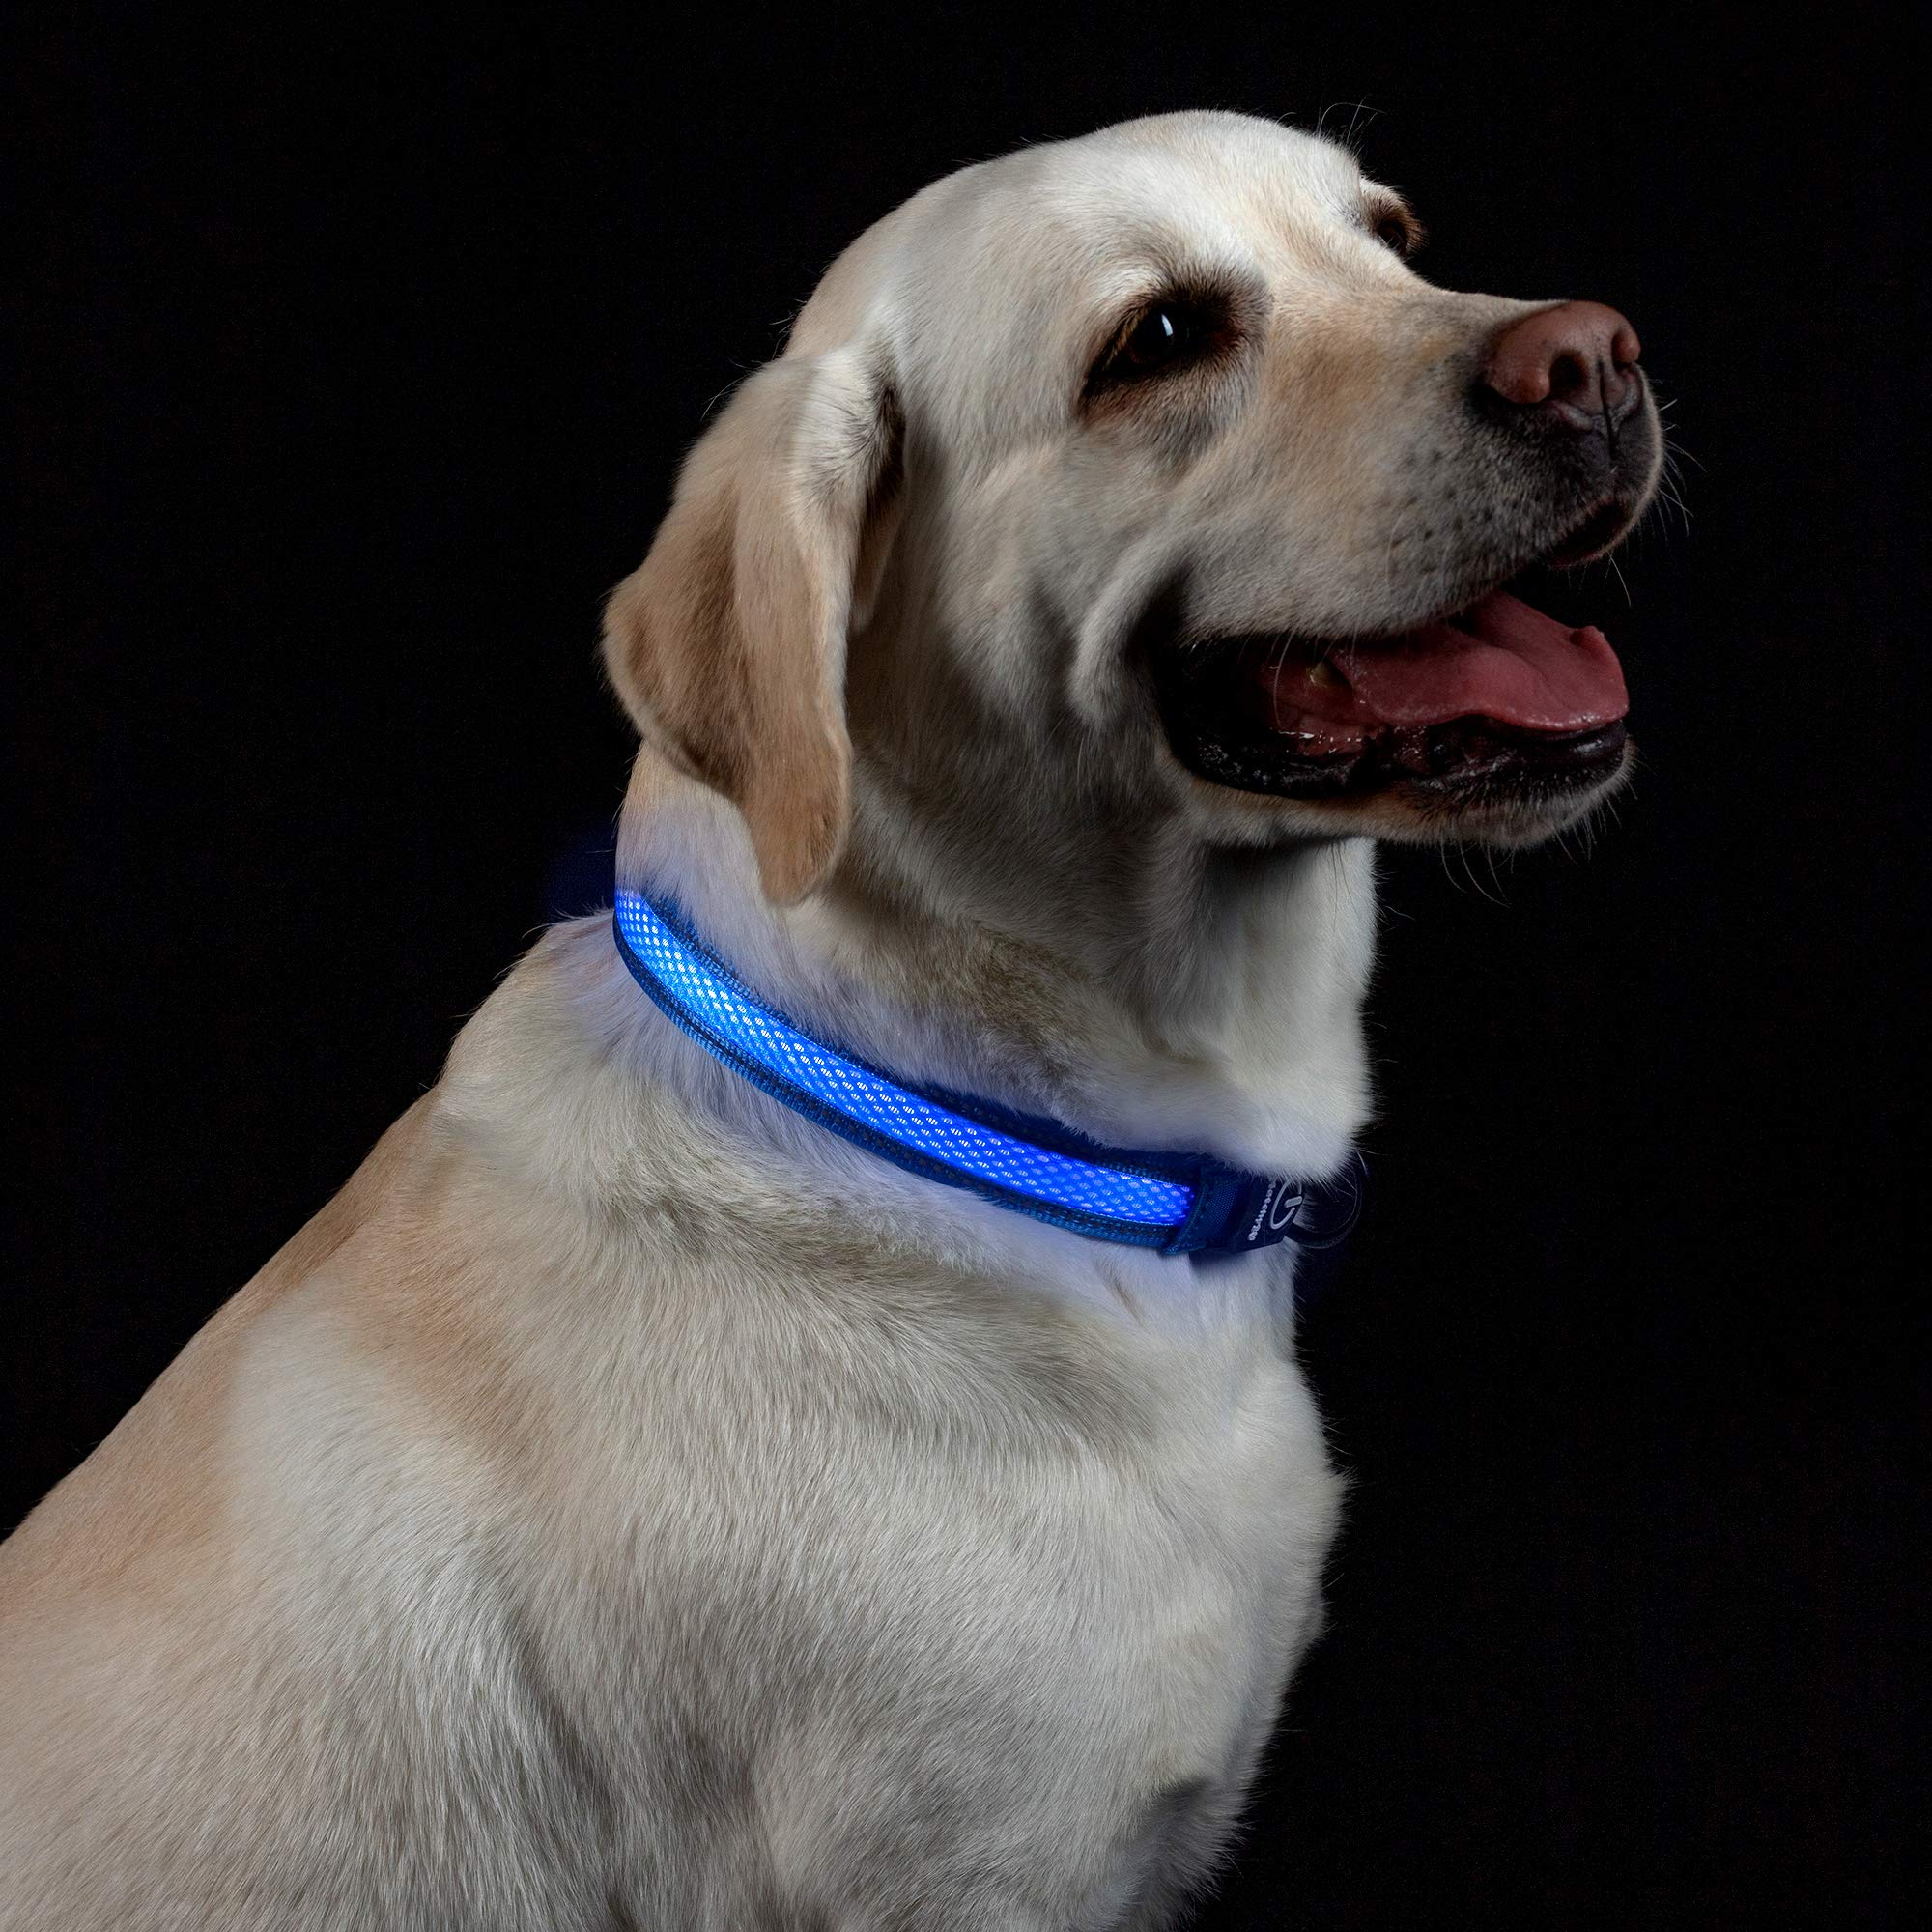 MATCHY2U LED Dog Collar - USB Rechargeable Reflective Light Up Collars for Small Medium Large Dogs